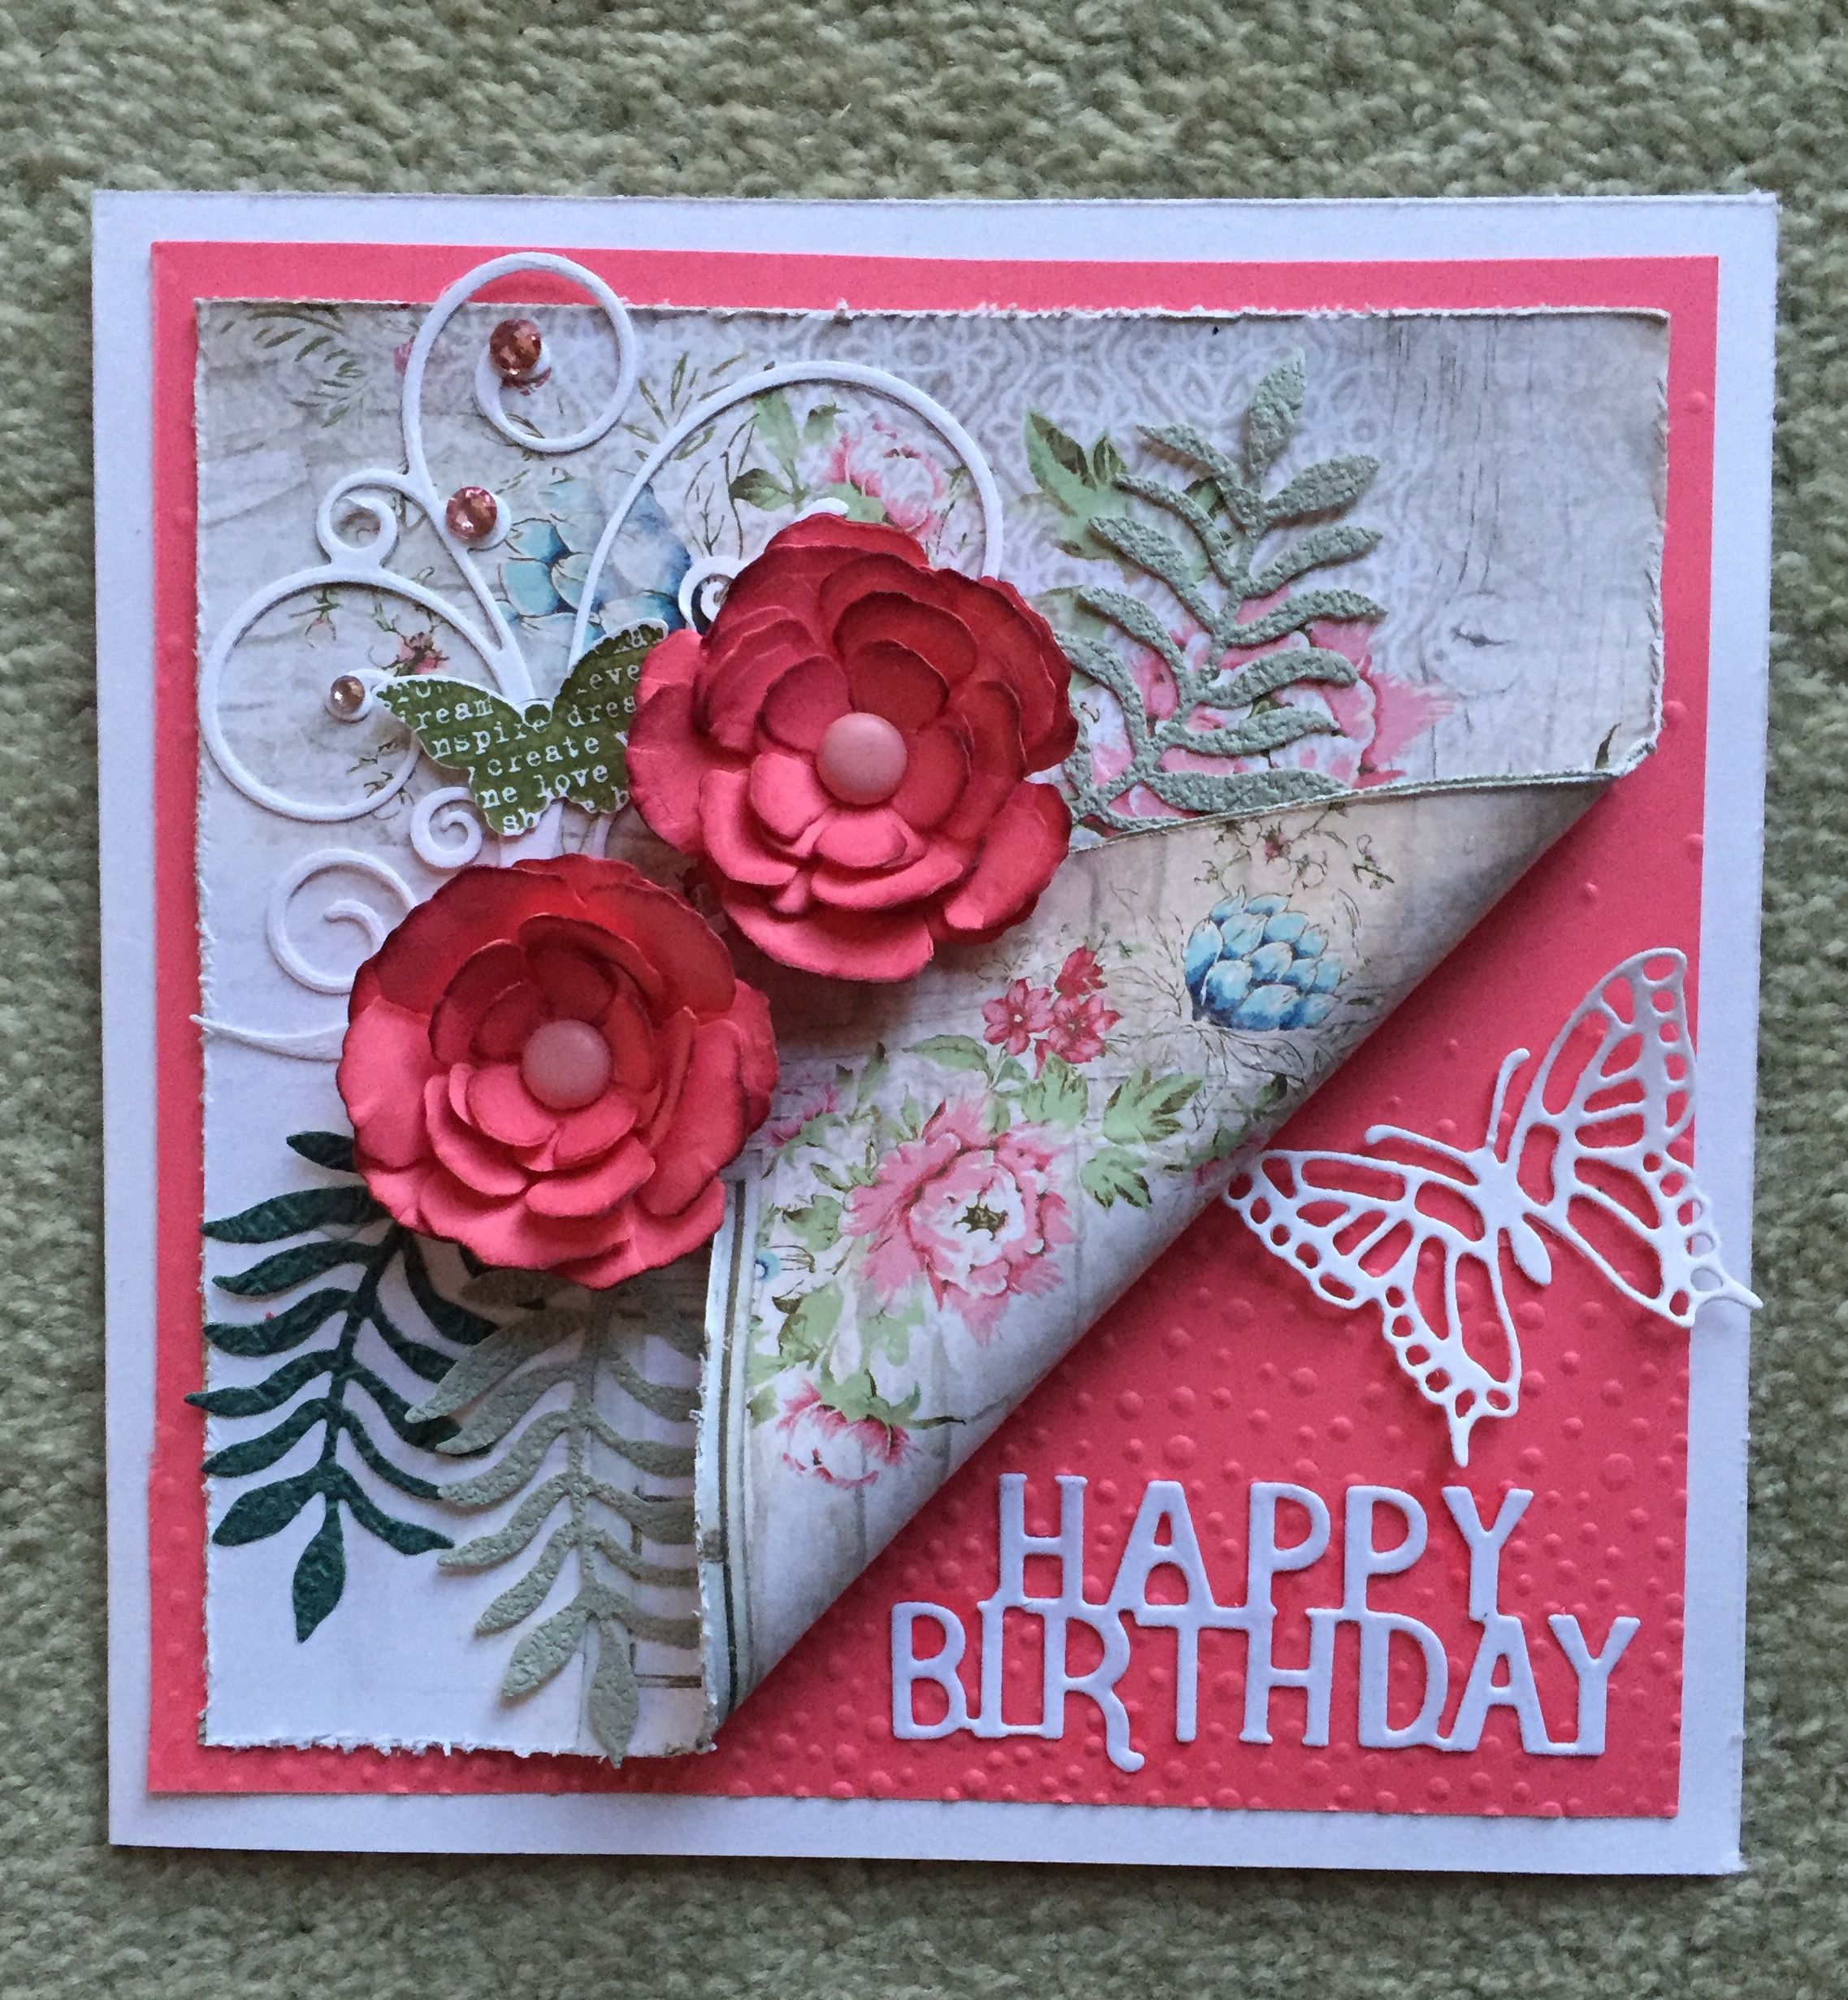 pinyvonne larsen on shabby chic cards  floral cards